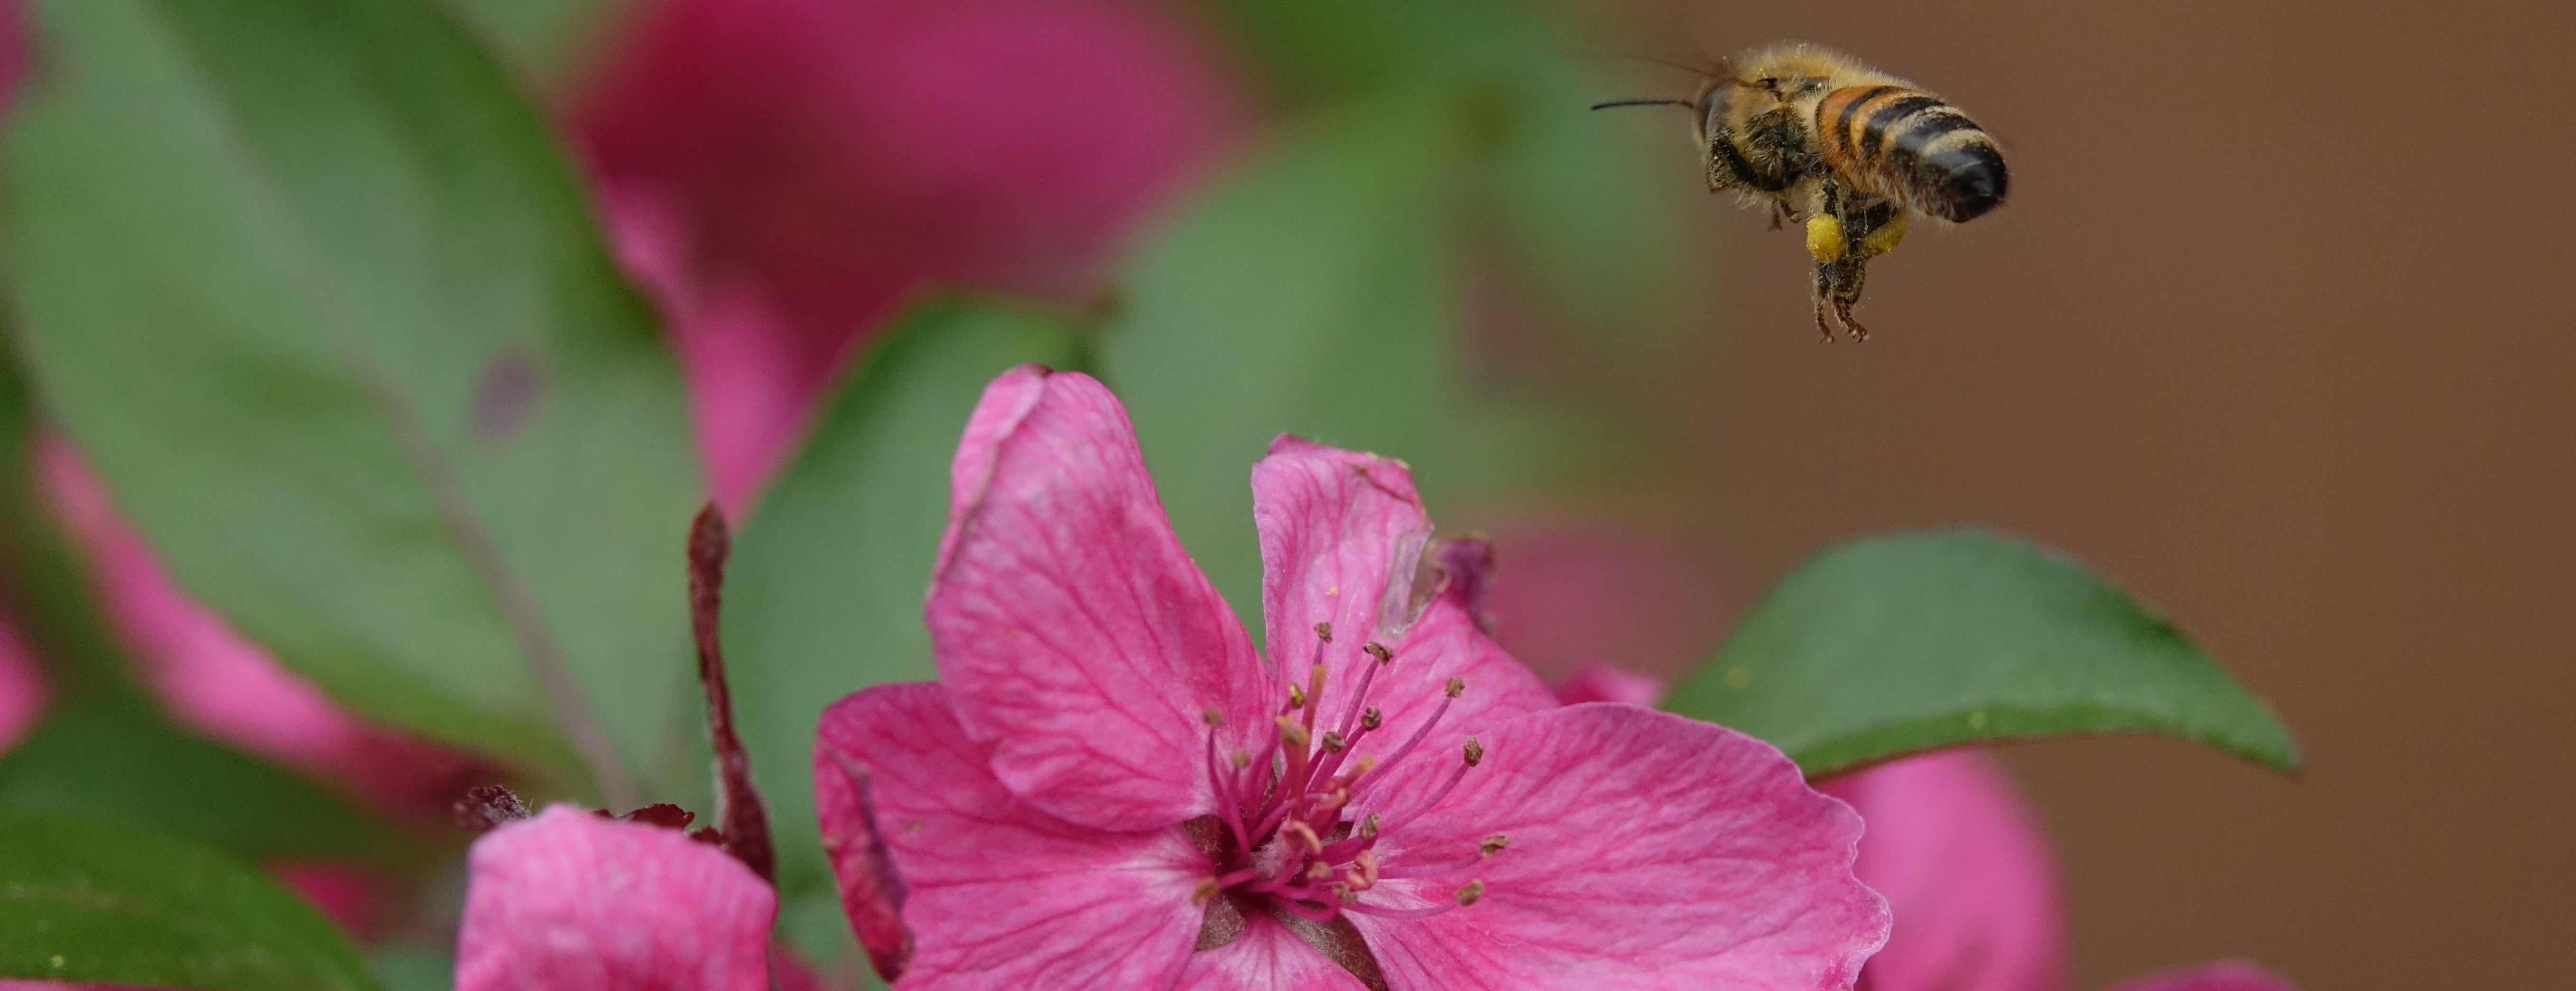 close up shot of a bee about to land on a flower petal